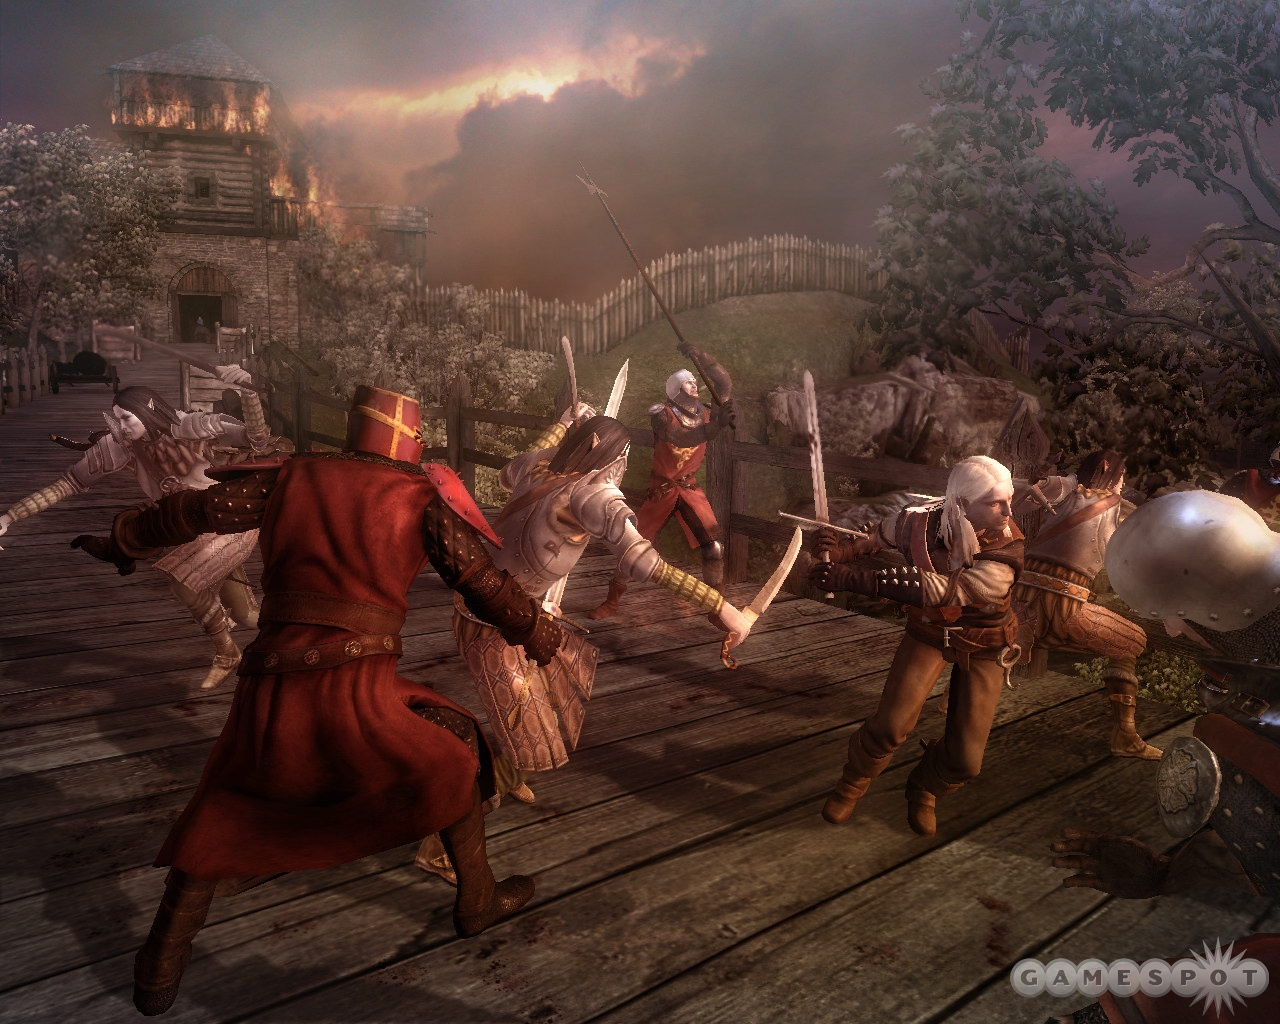 The combat system will require some practice, as it tries to capture the rhythm of sword fighting.